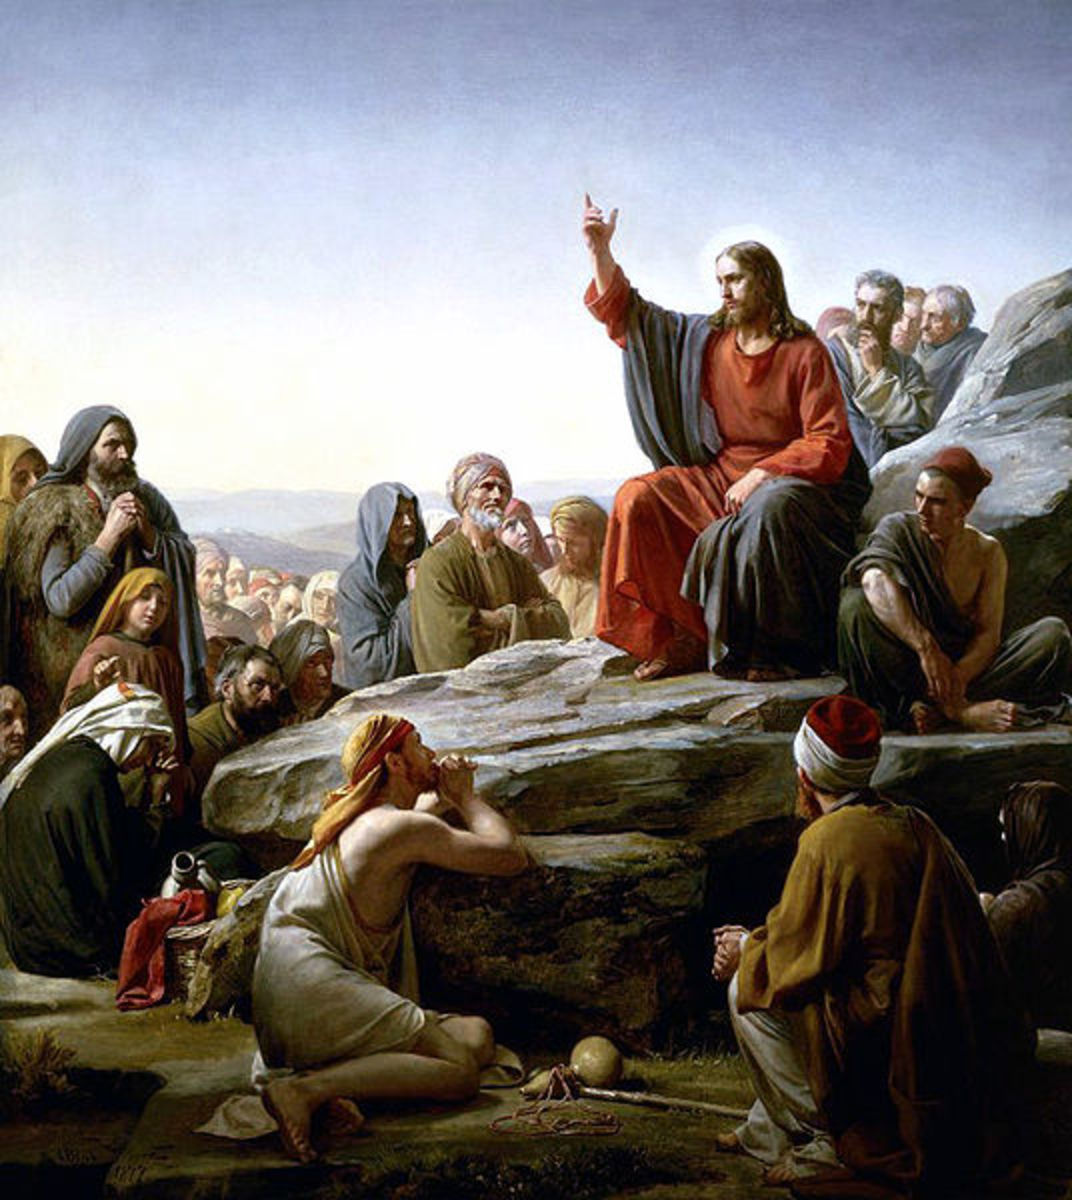 The founder of Christianity. A painting of the Sermon on the Mount, by nineteenth century artist, Carl Heinrich Bloch.